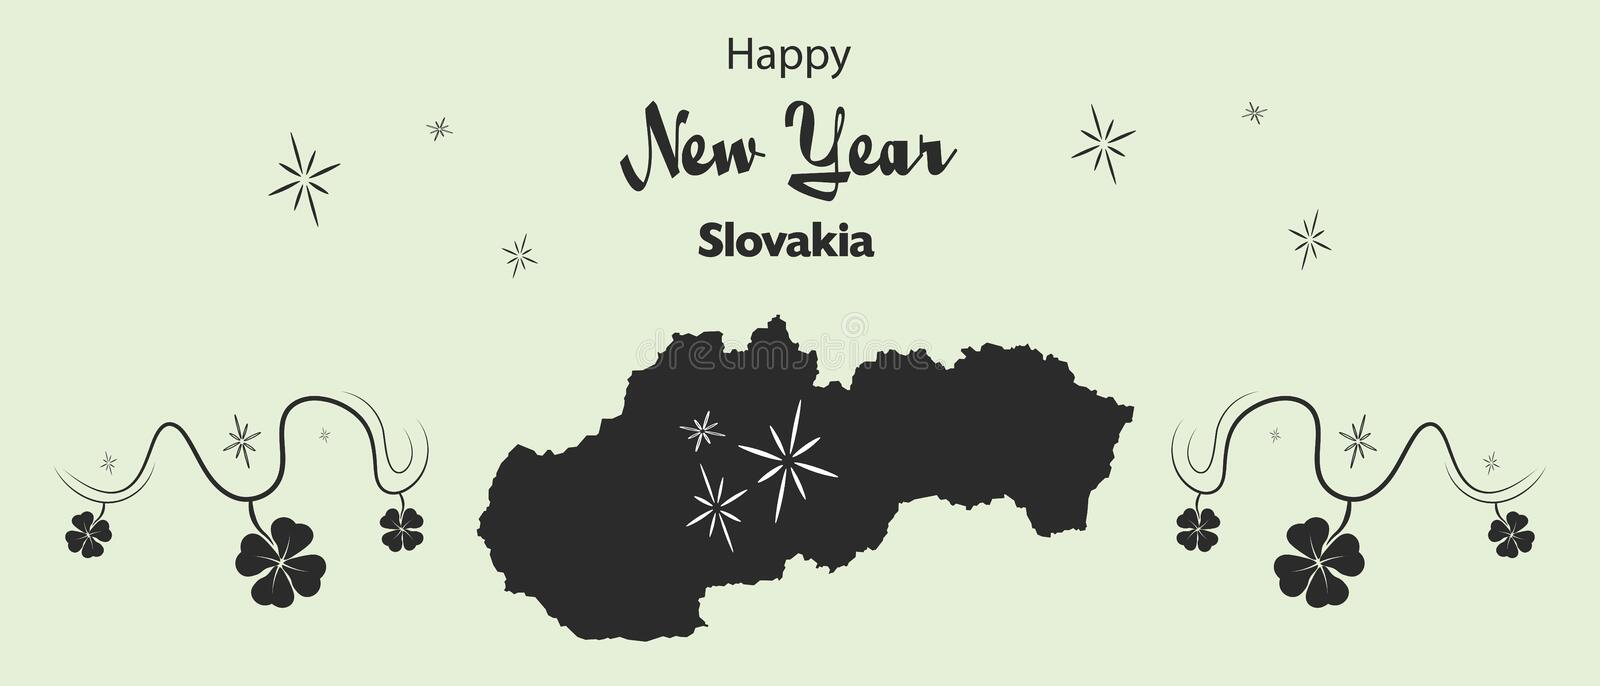 Happy New Year theme with map of Slovakia stock illustration